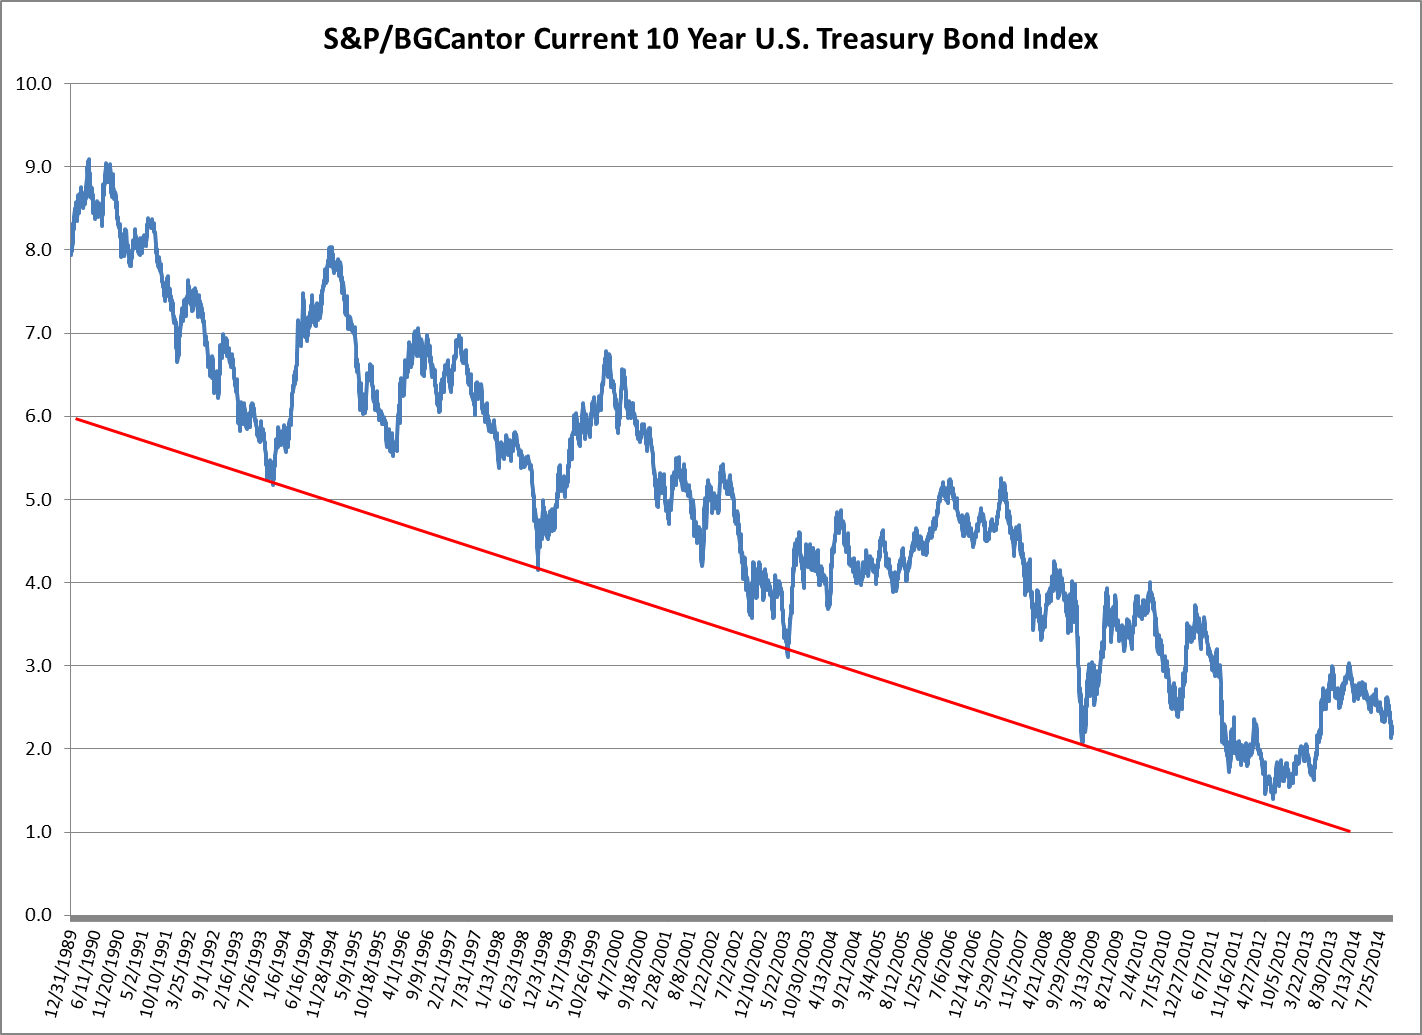 Yield-to-Worst History of the S&P-BGCantor Current 10 Year U.S. Treasury Bond Index